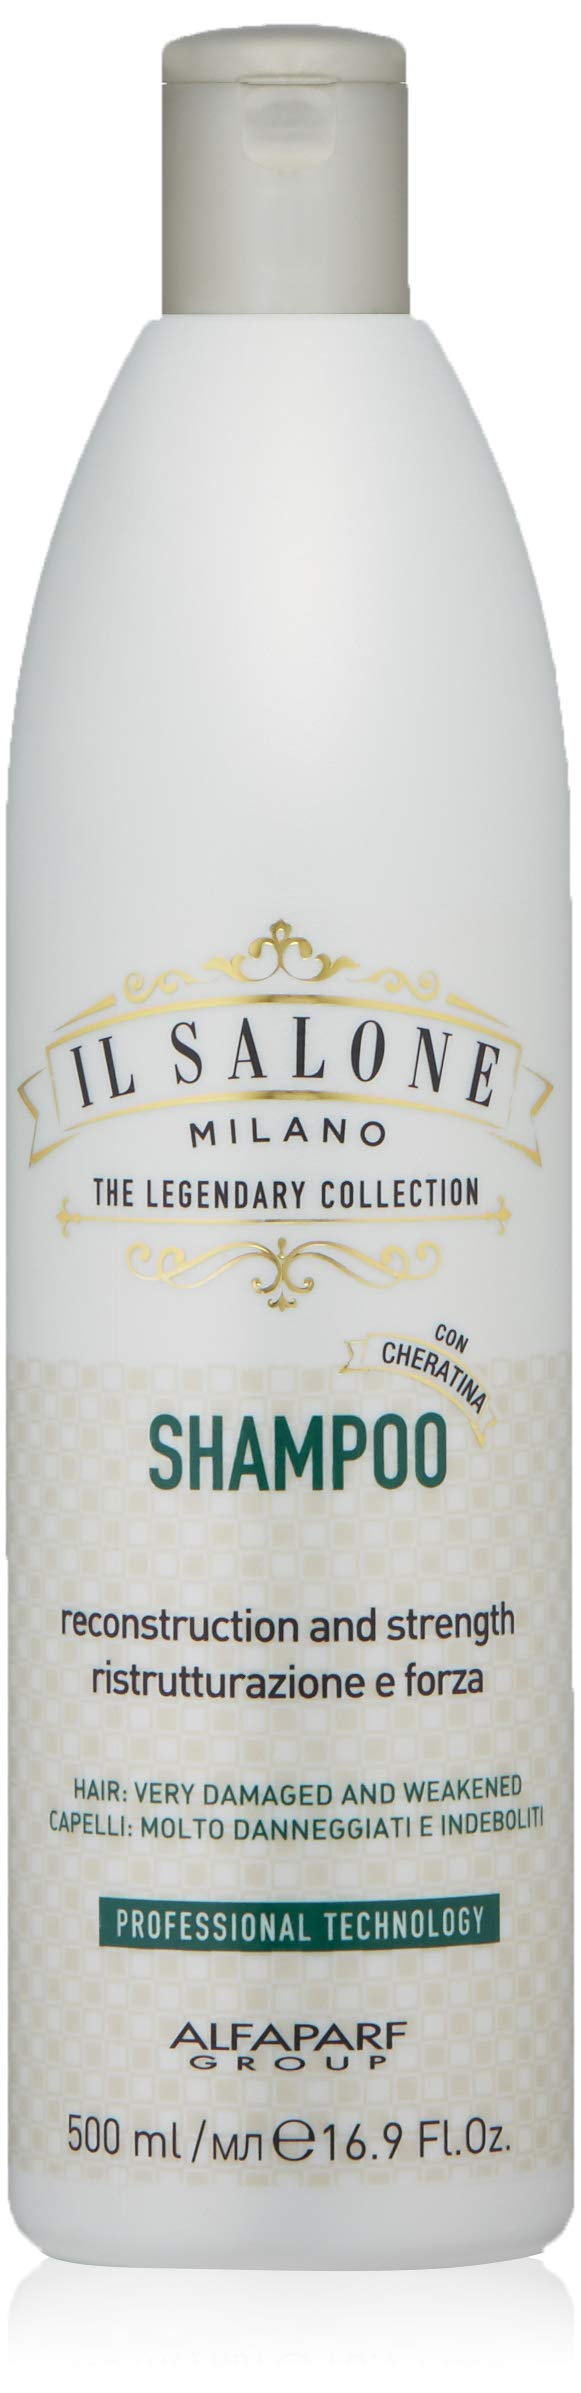 Il Salone Milano Professional Keratin Shampoo for Very Damaged Hair - Reconstruction, Strengthen and Repair - Premium Quality - 16.91 Fl. Oz / 500ml